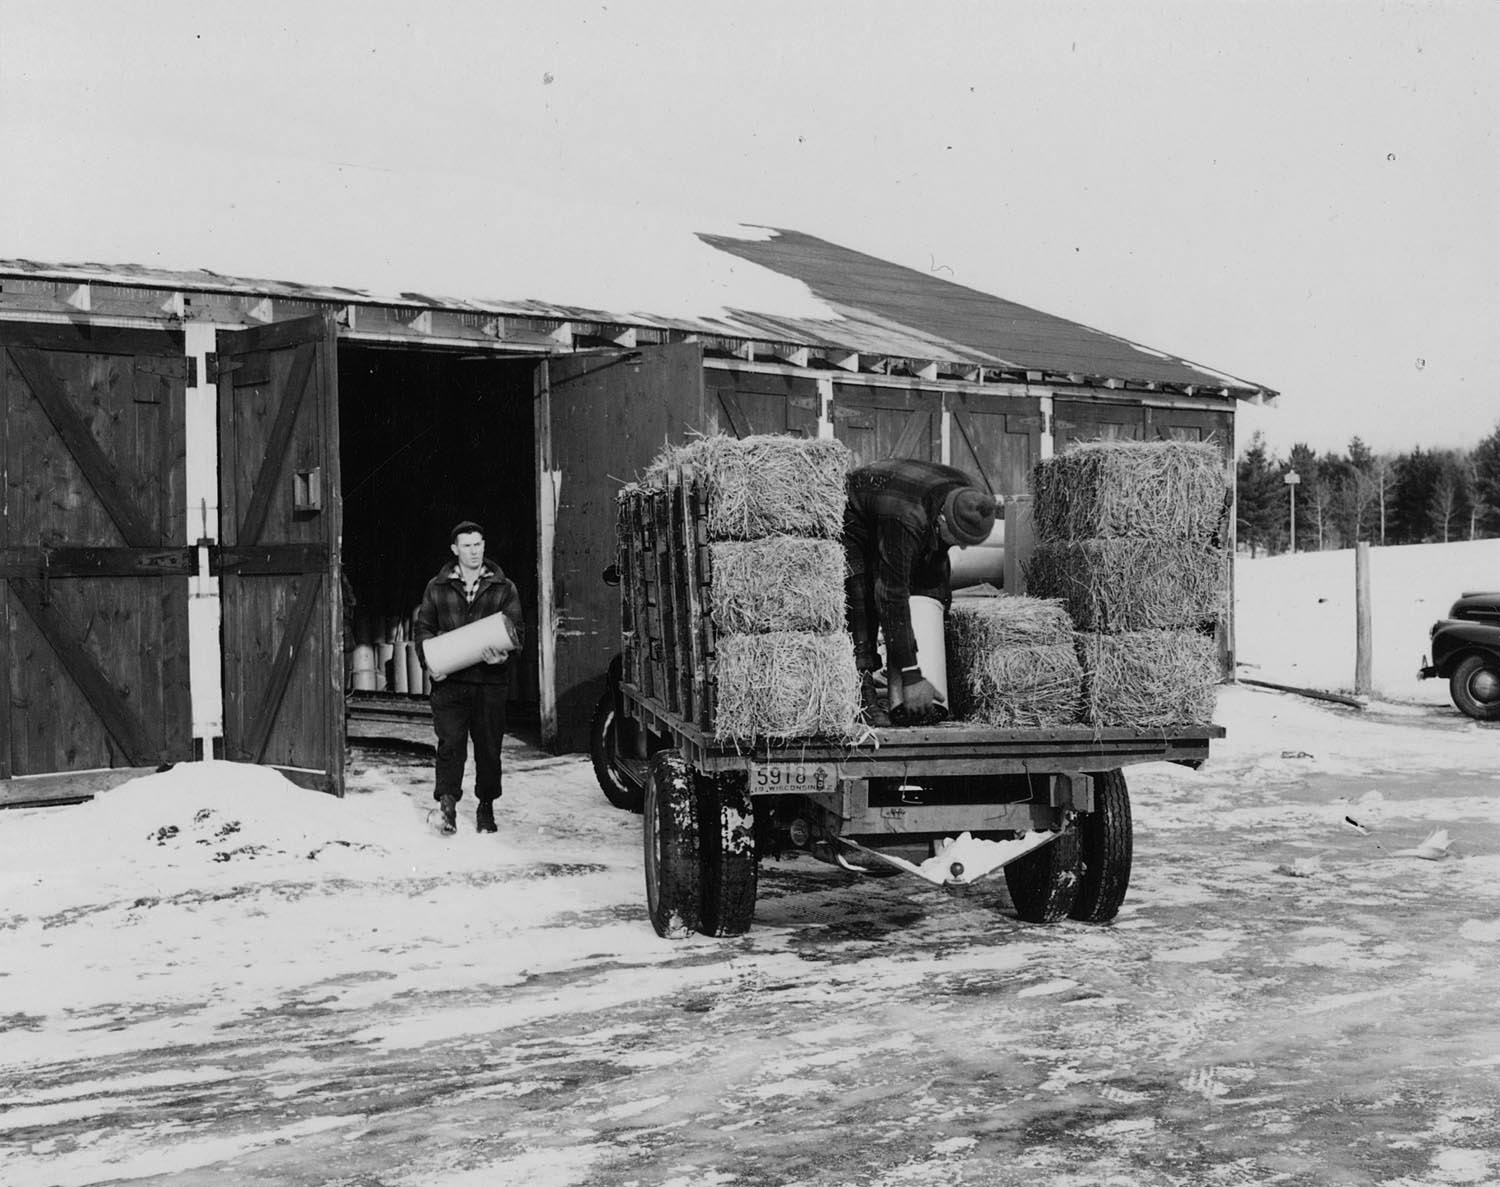 Loading state truck with baled hay, concentrate and corn, preparatory to transporting food to deer feeding station at White Sand Lake. Photo dated 1944. Wisconsin Department of Natural Resources photo